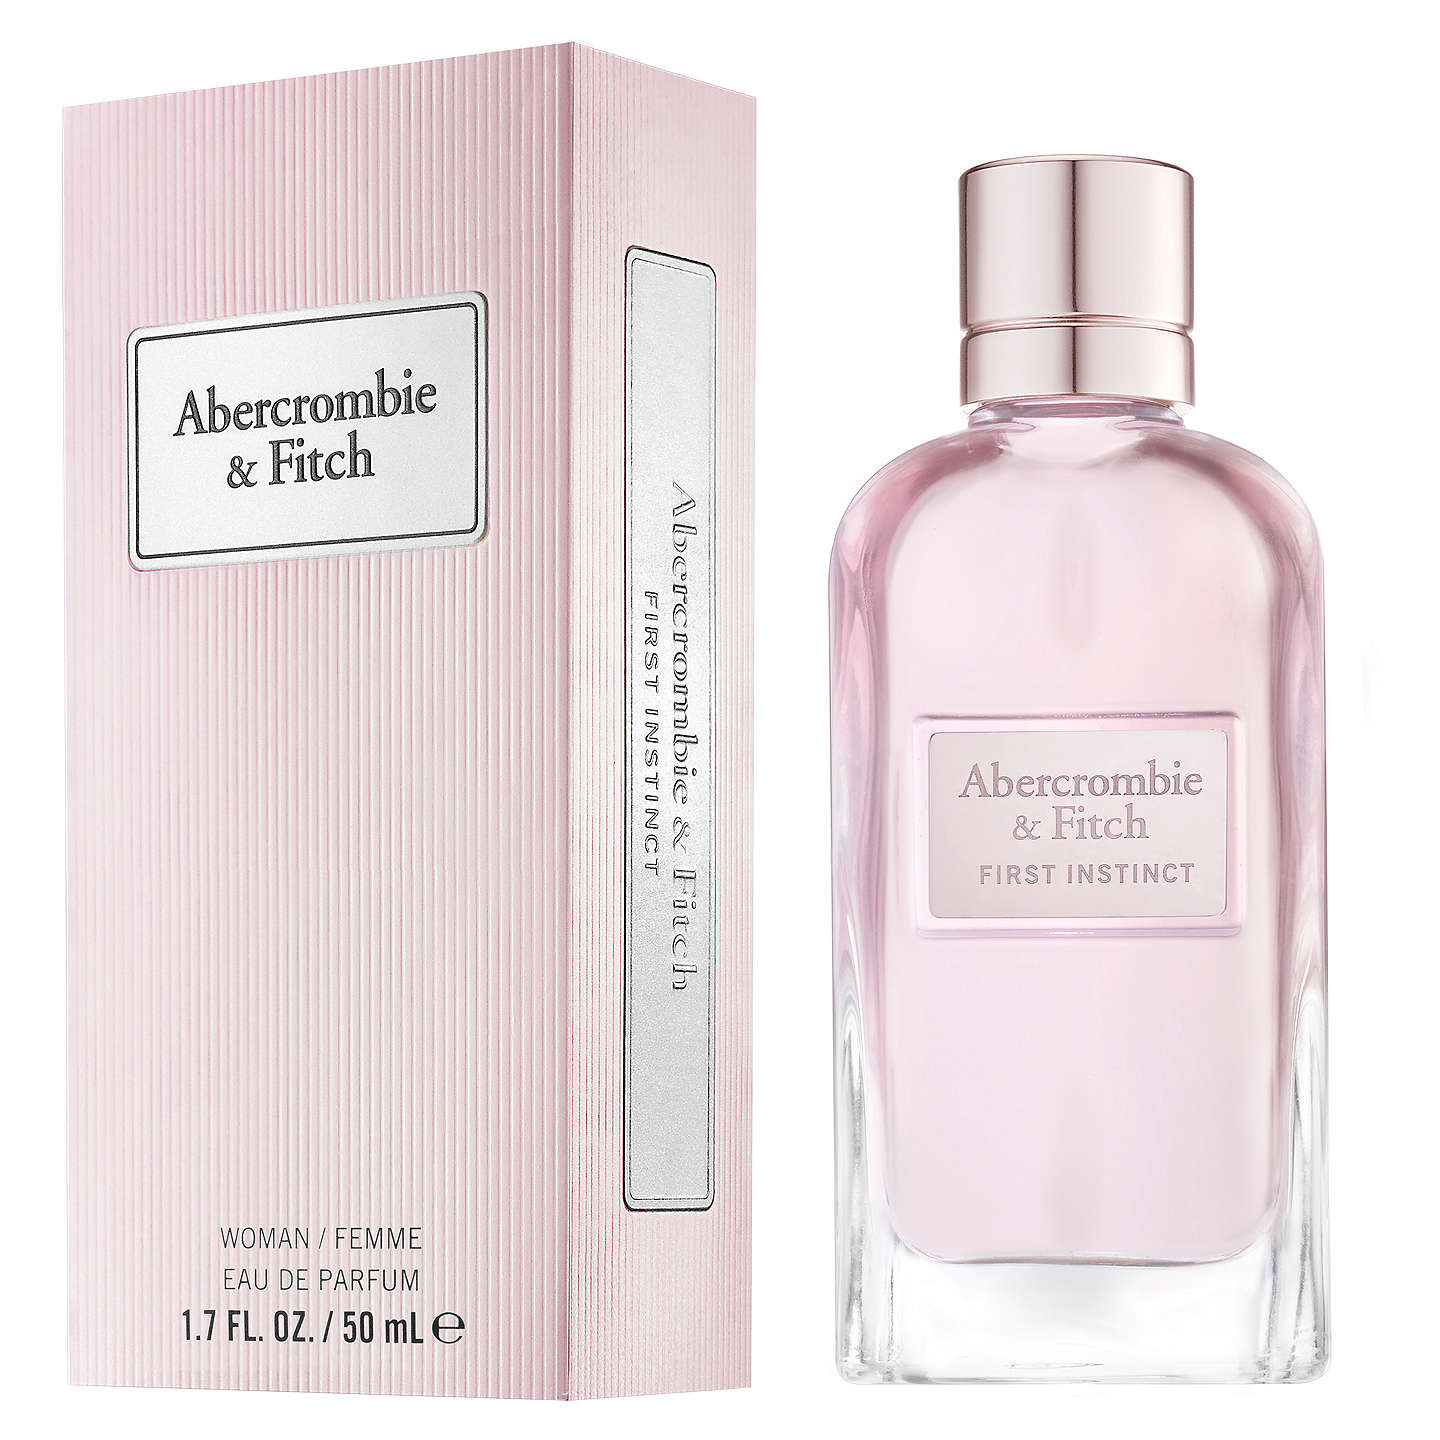 BuyAbercrombie & Fitch First Instinct For Her Eau de Parfum, 50ml Online at johnlewis.com